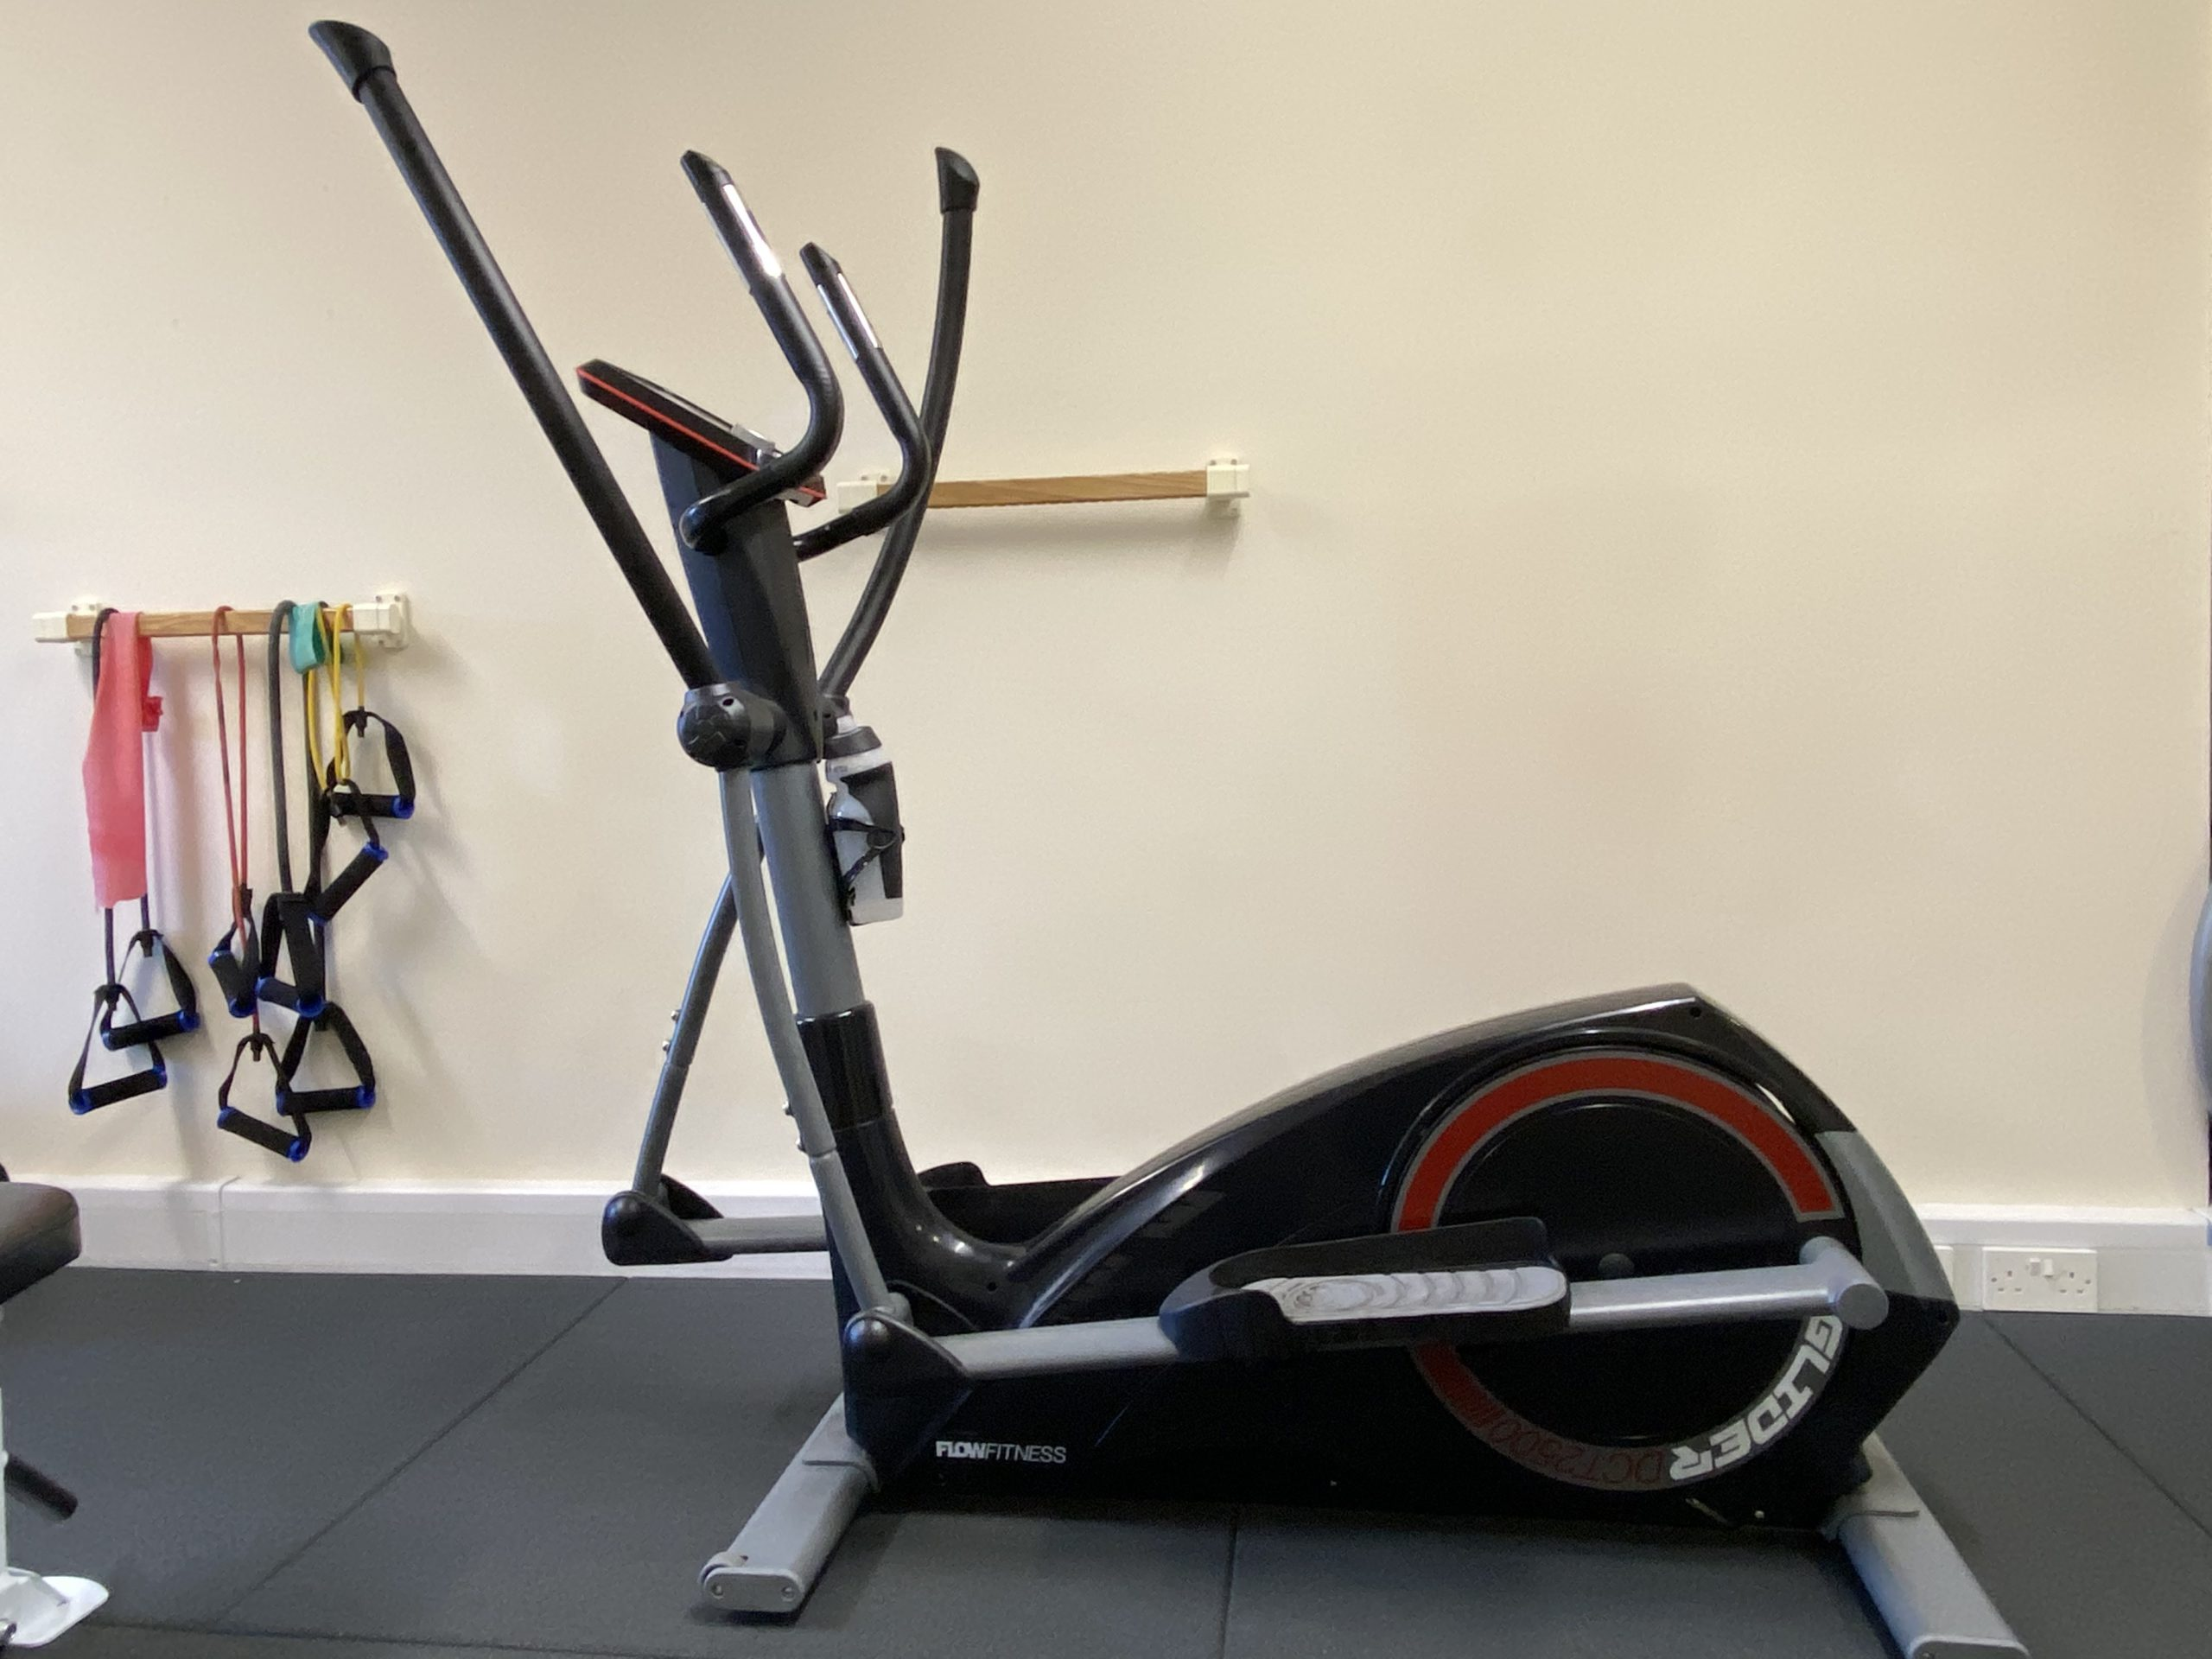 Elliptical cross trainer and resitance bands in gym